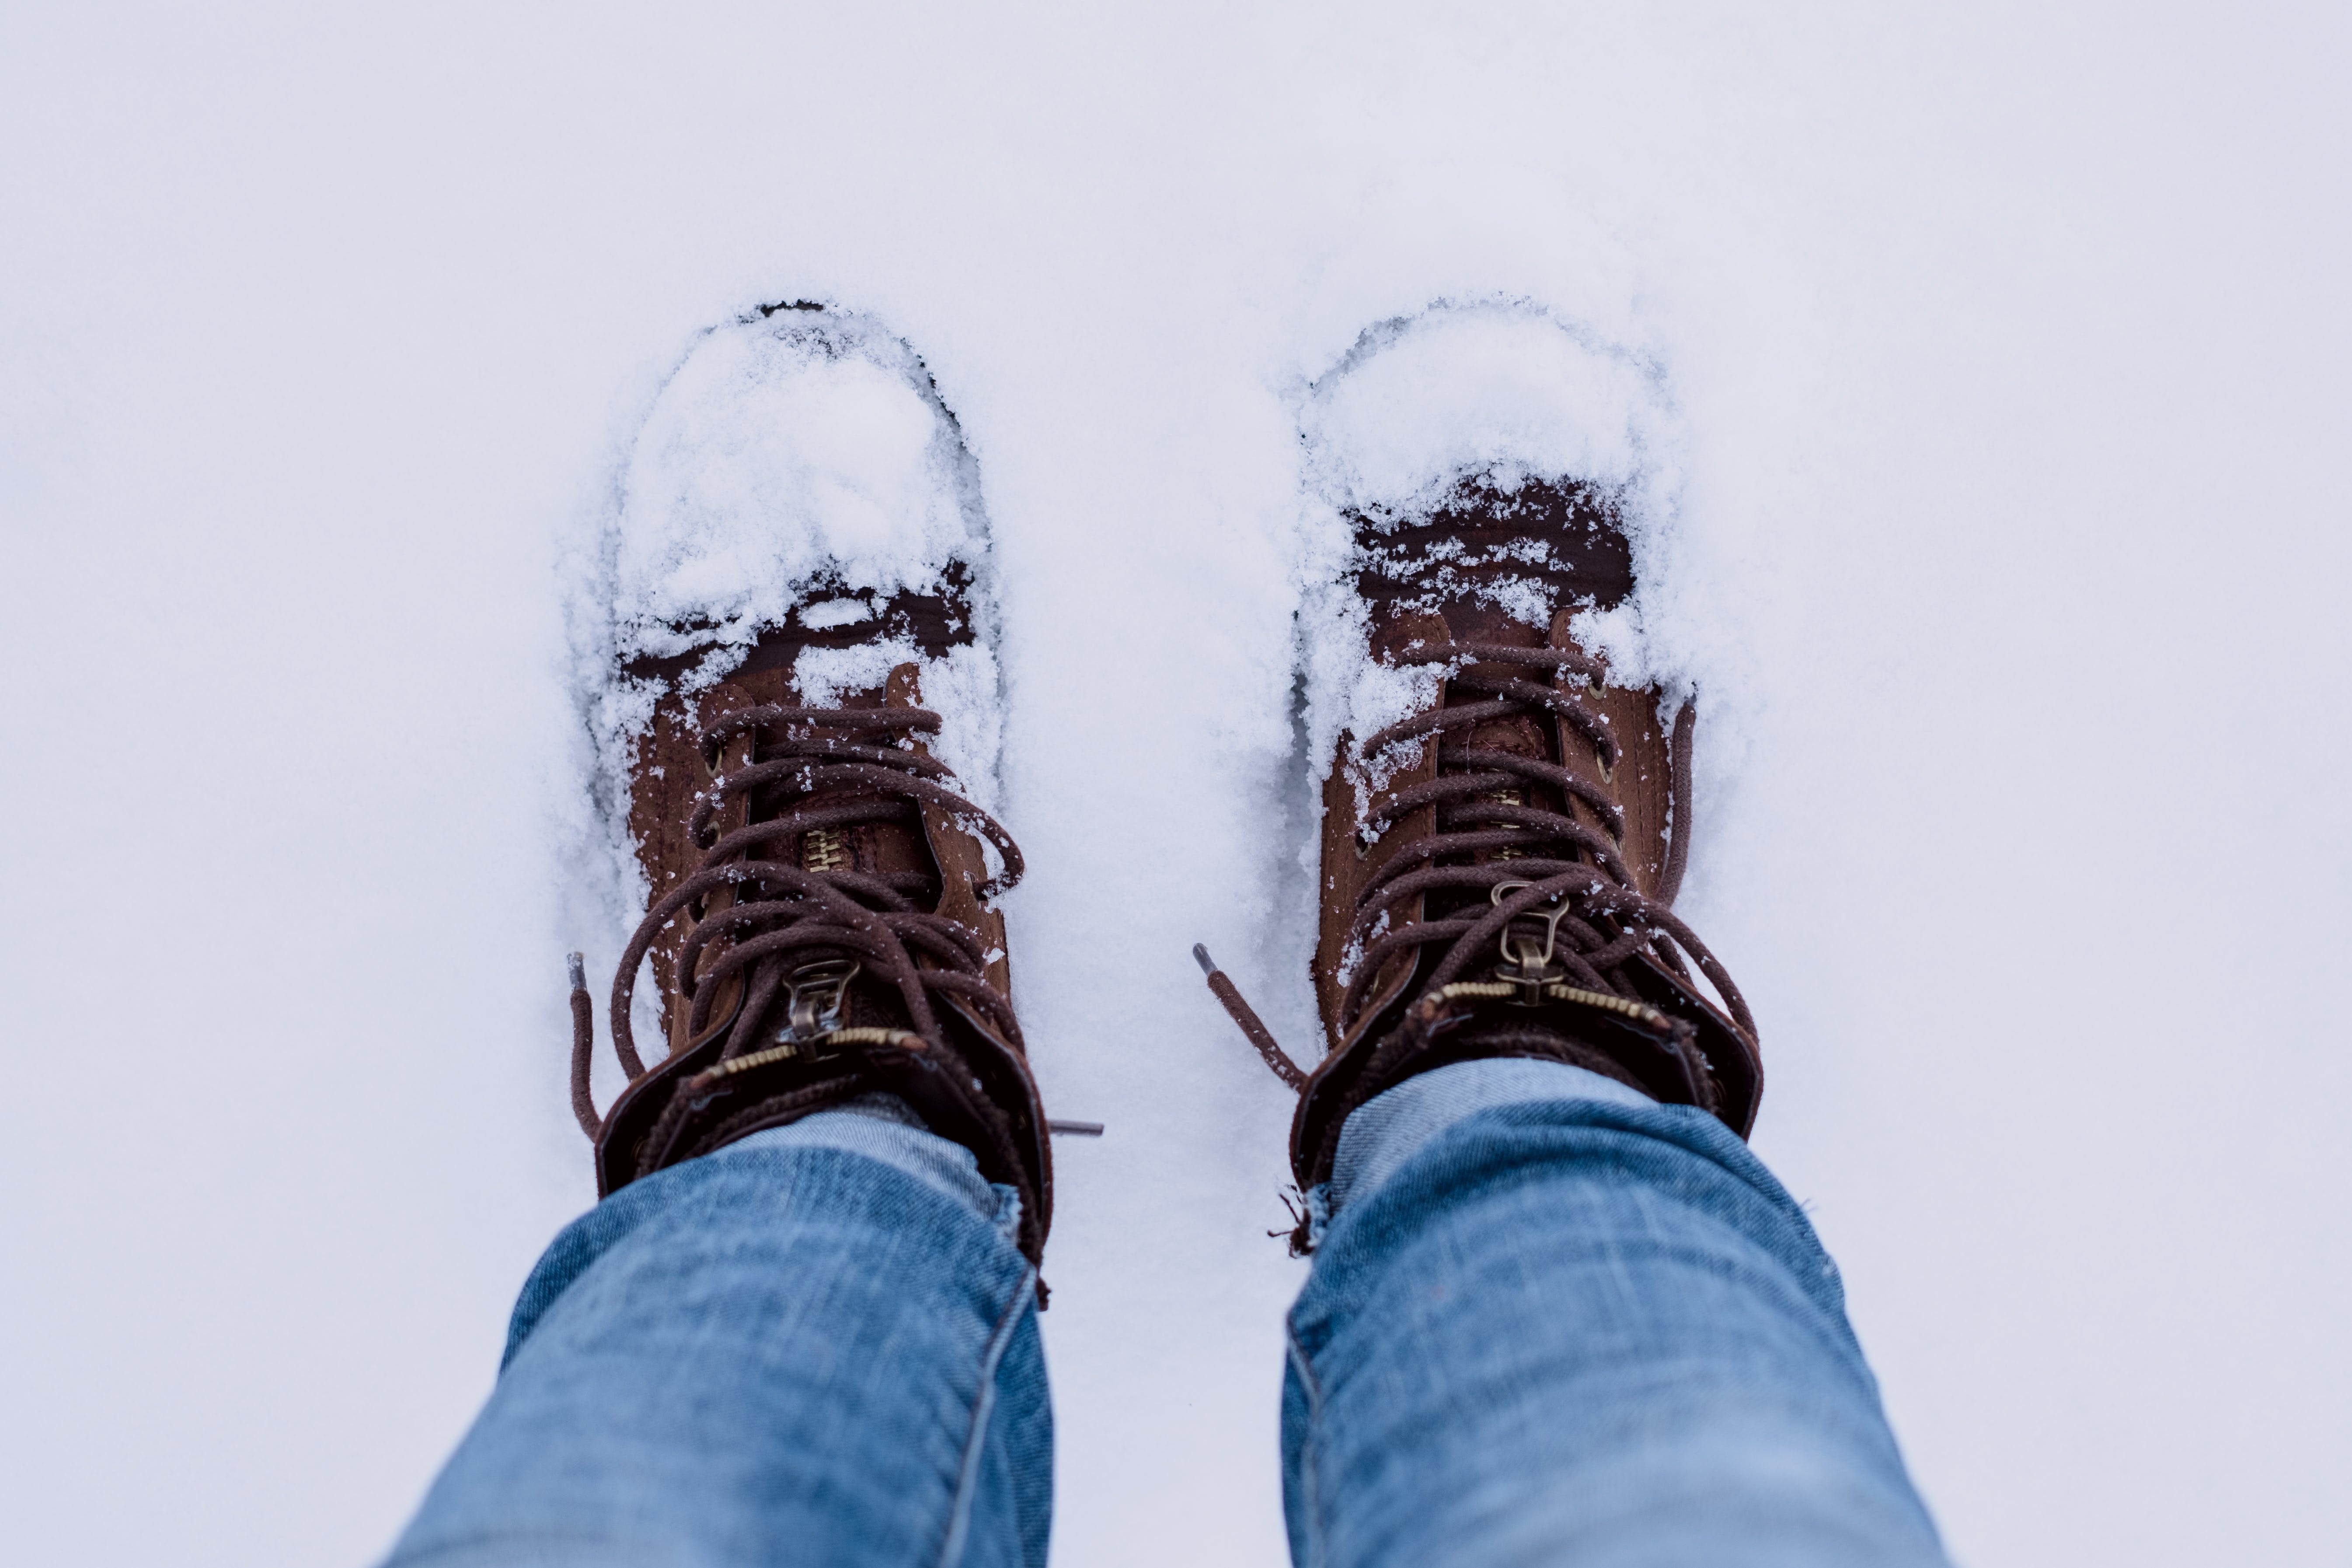 Person Wearing Brown Boots and Blue Denim Jeans Standing on Snow